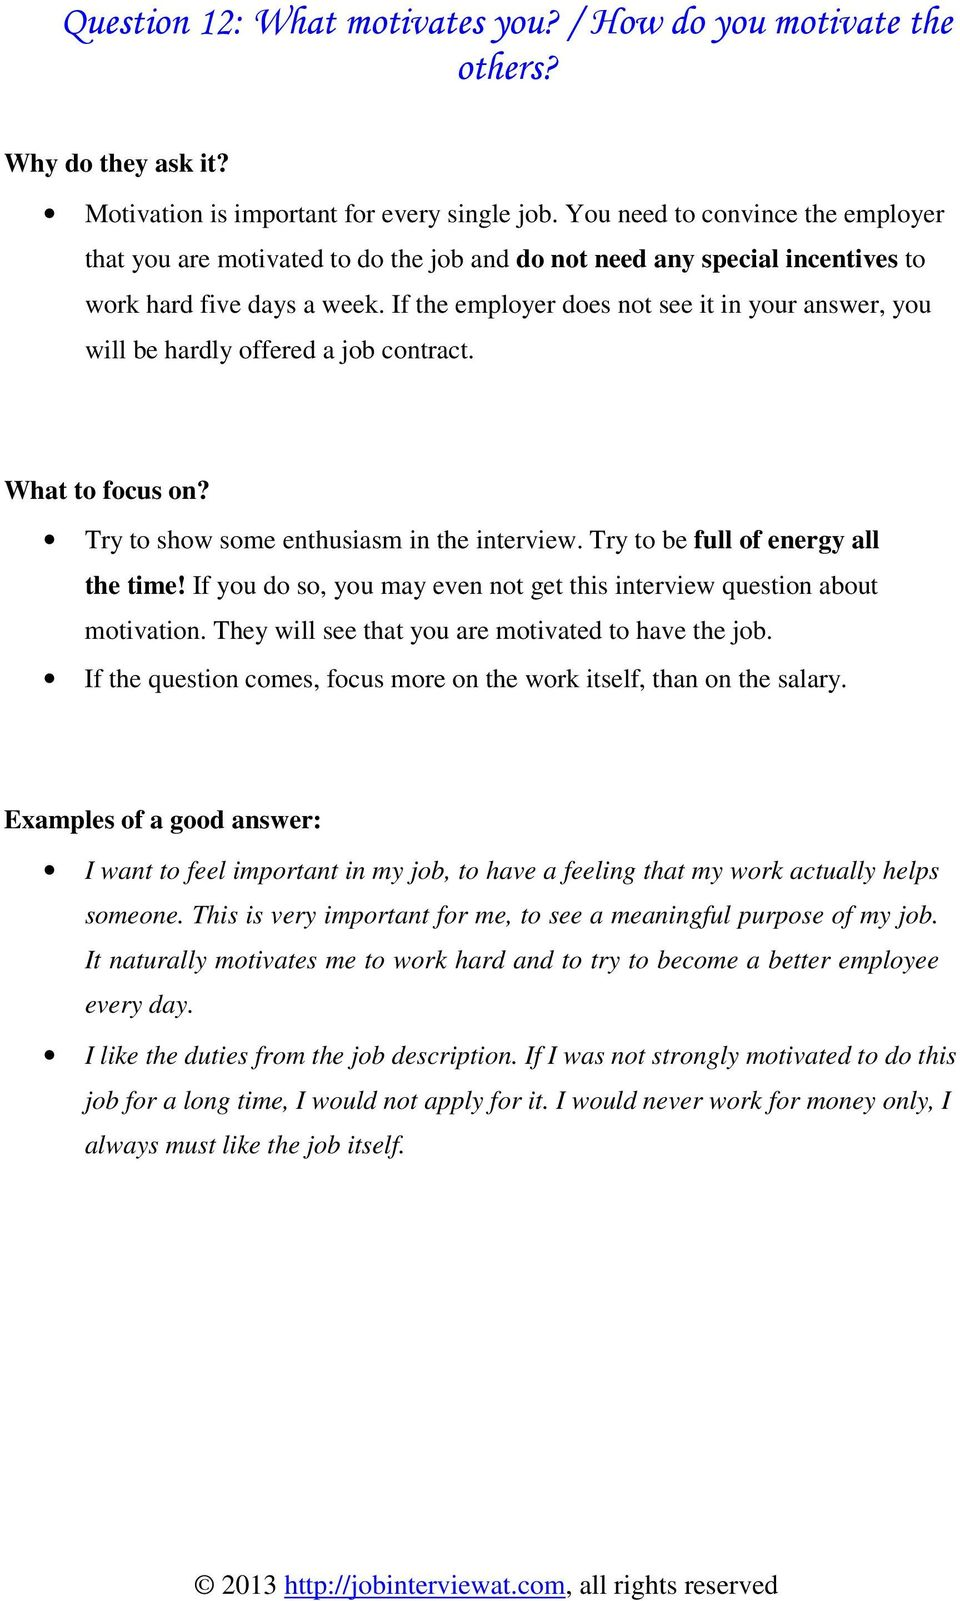 15 Most Typically Used Interview Questions And Answers Pdf